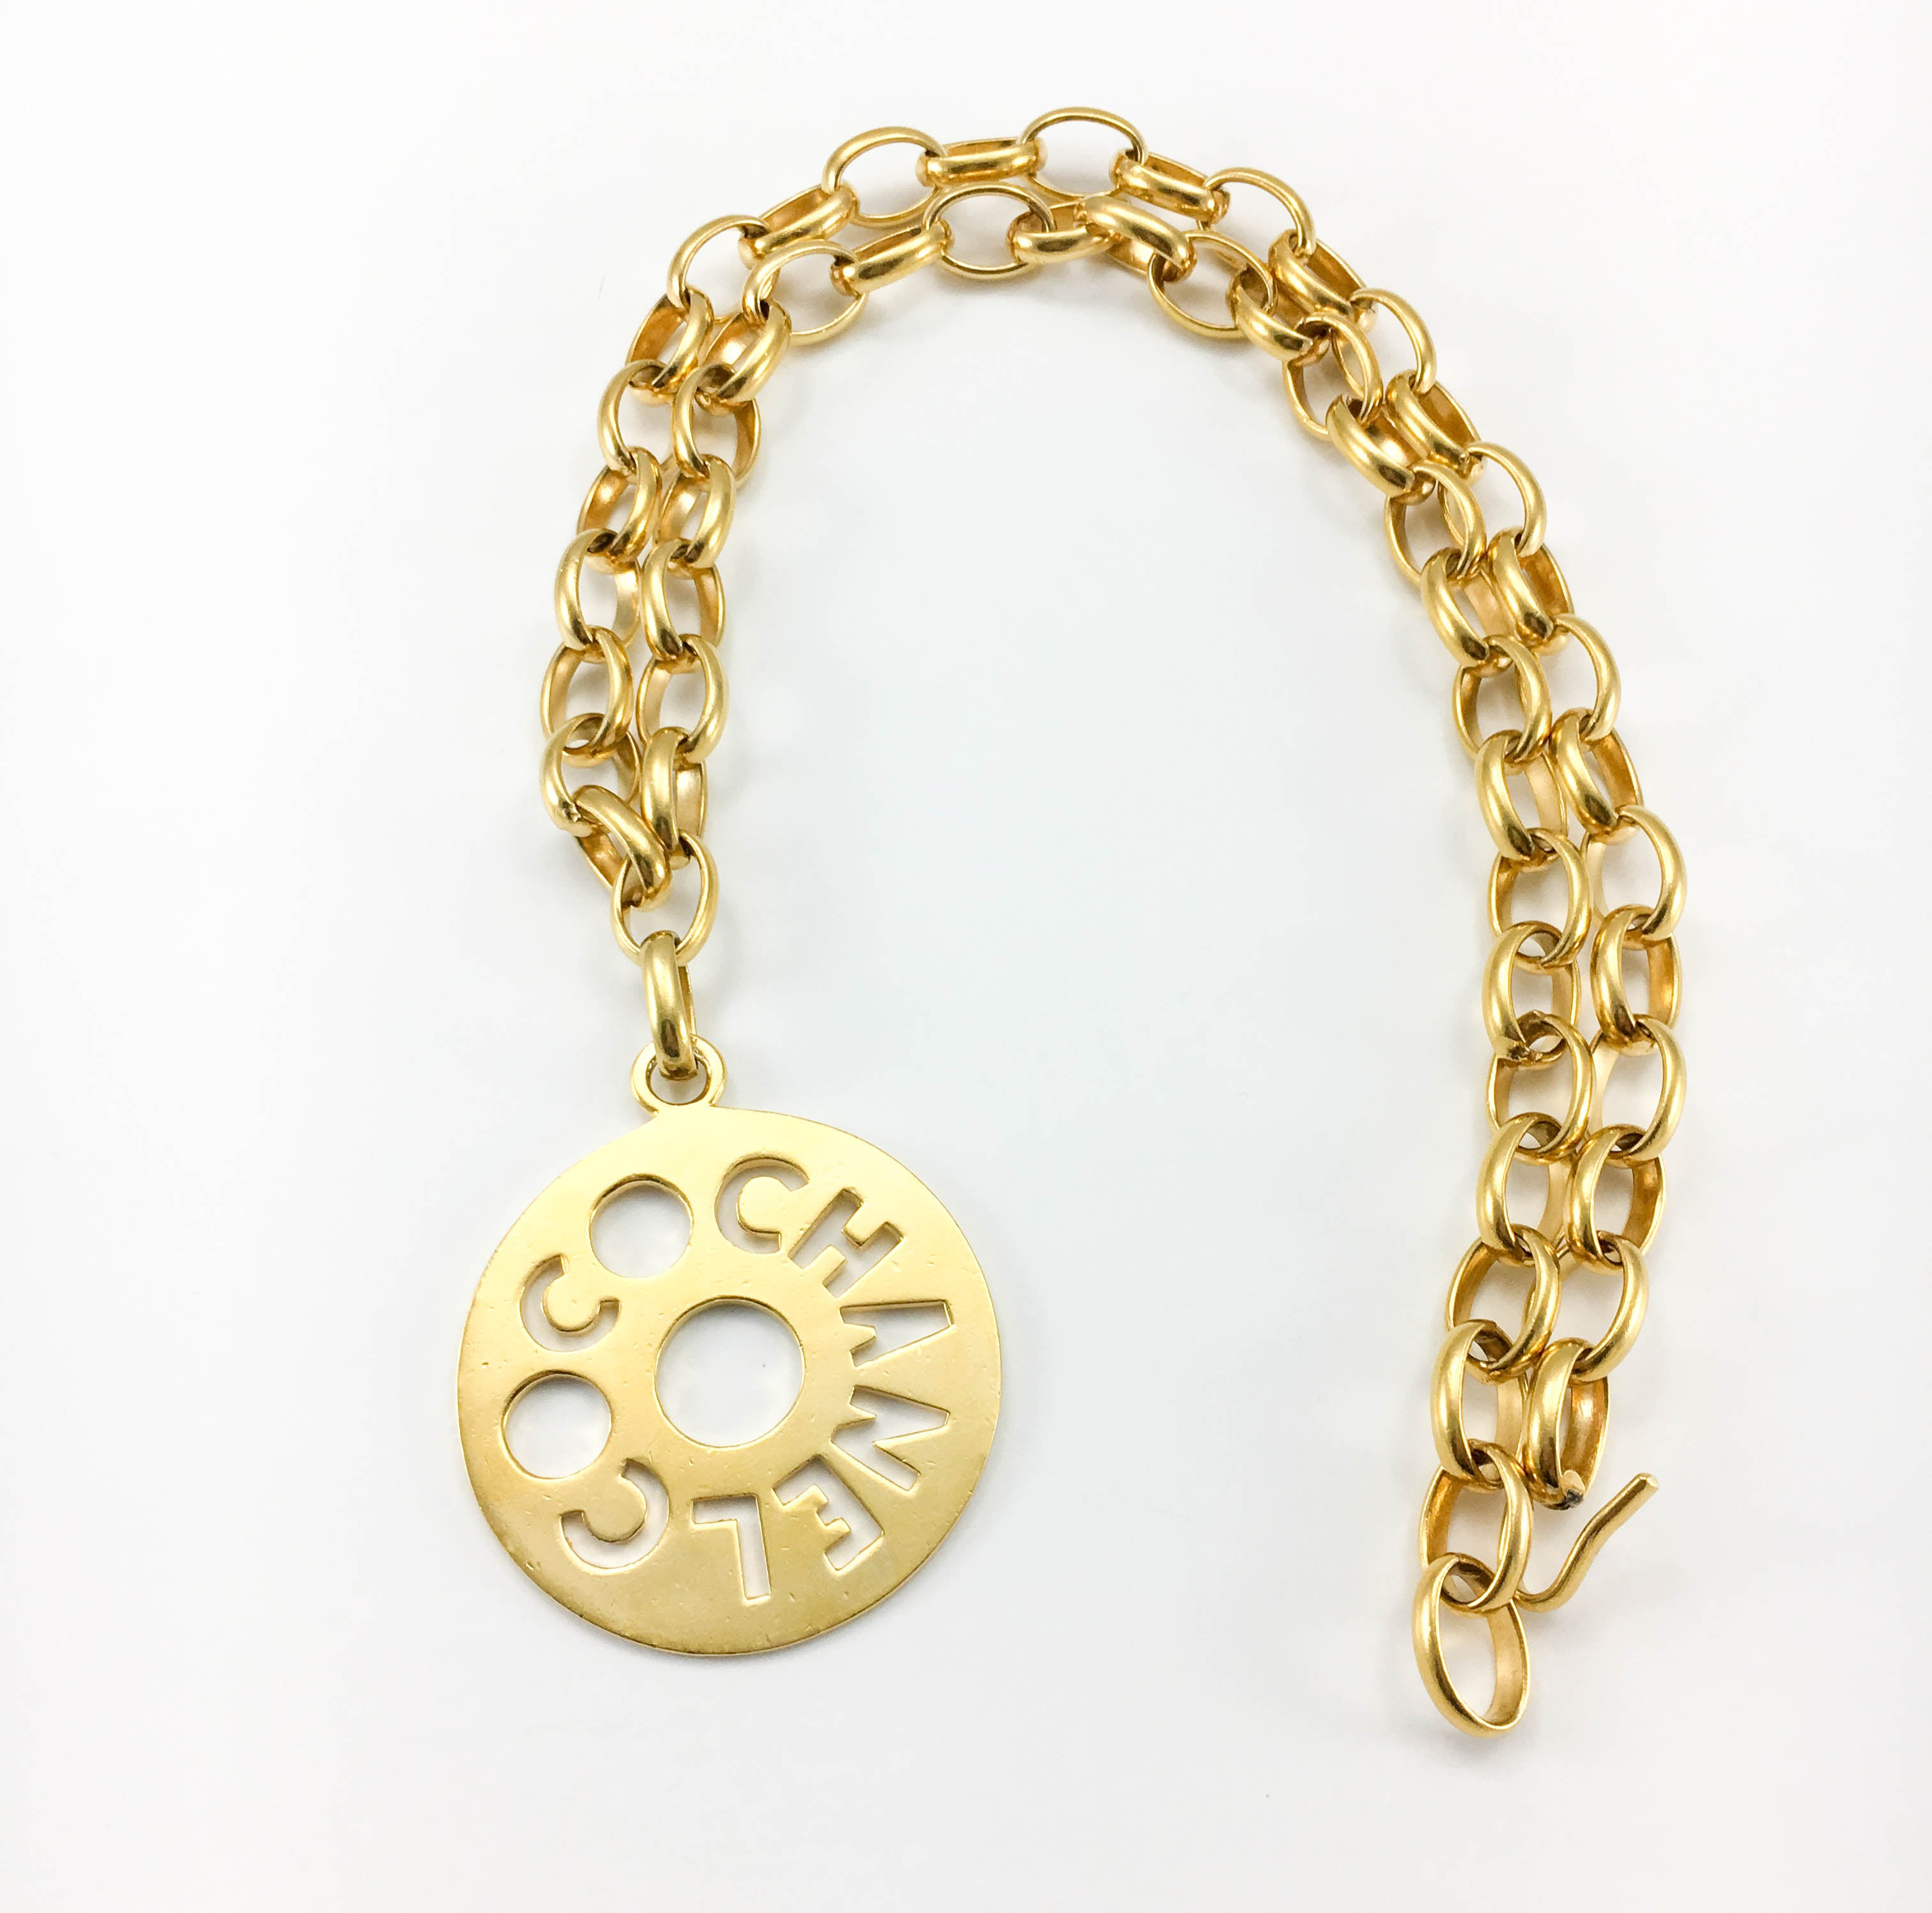 20c59b41b281 Chanel Chunky Gold-Tone 'Coco Chanel' Disk Pendant Chain Necklace - 1970's  at 1stdibs